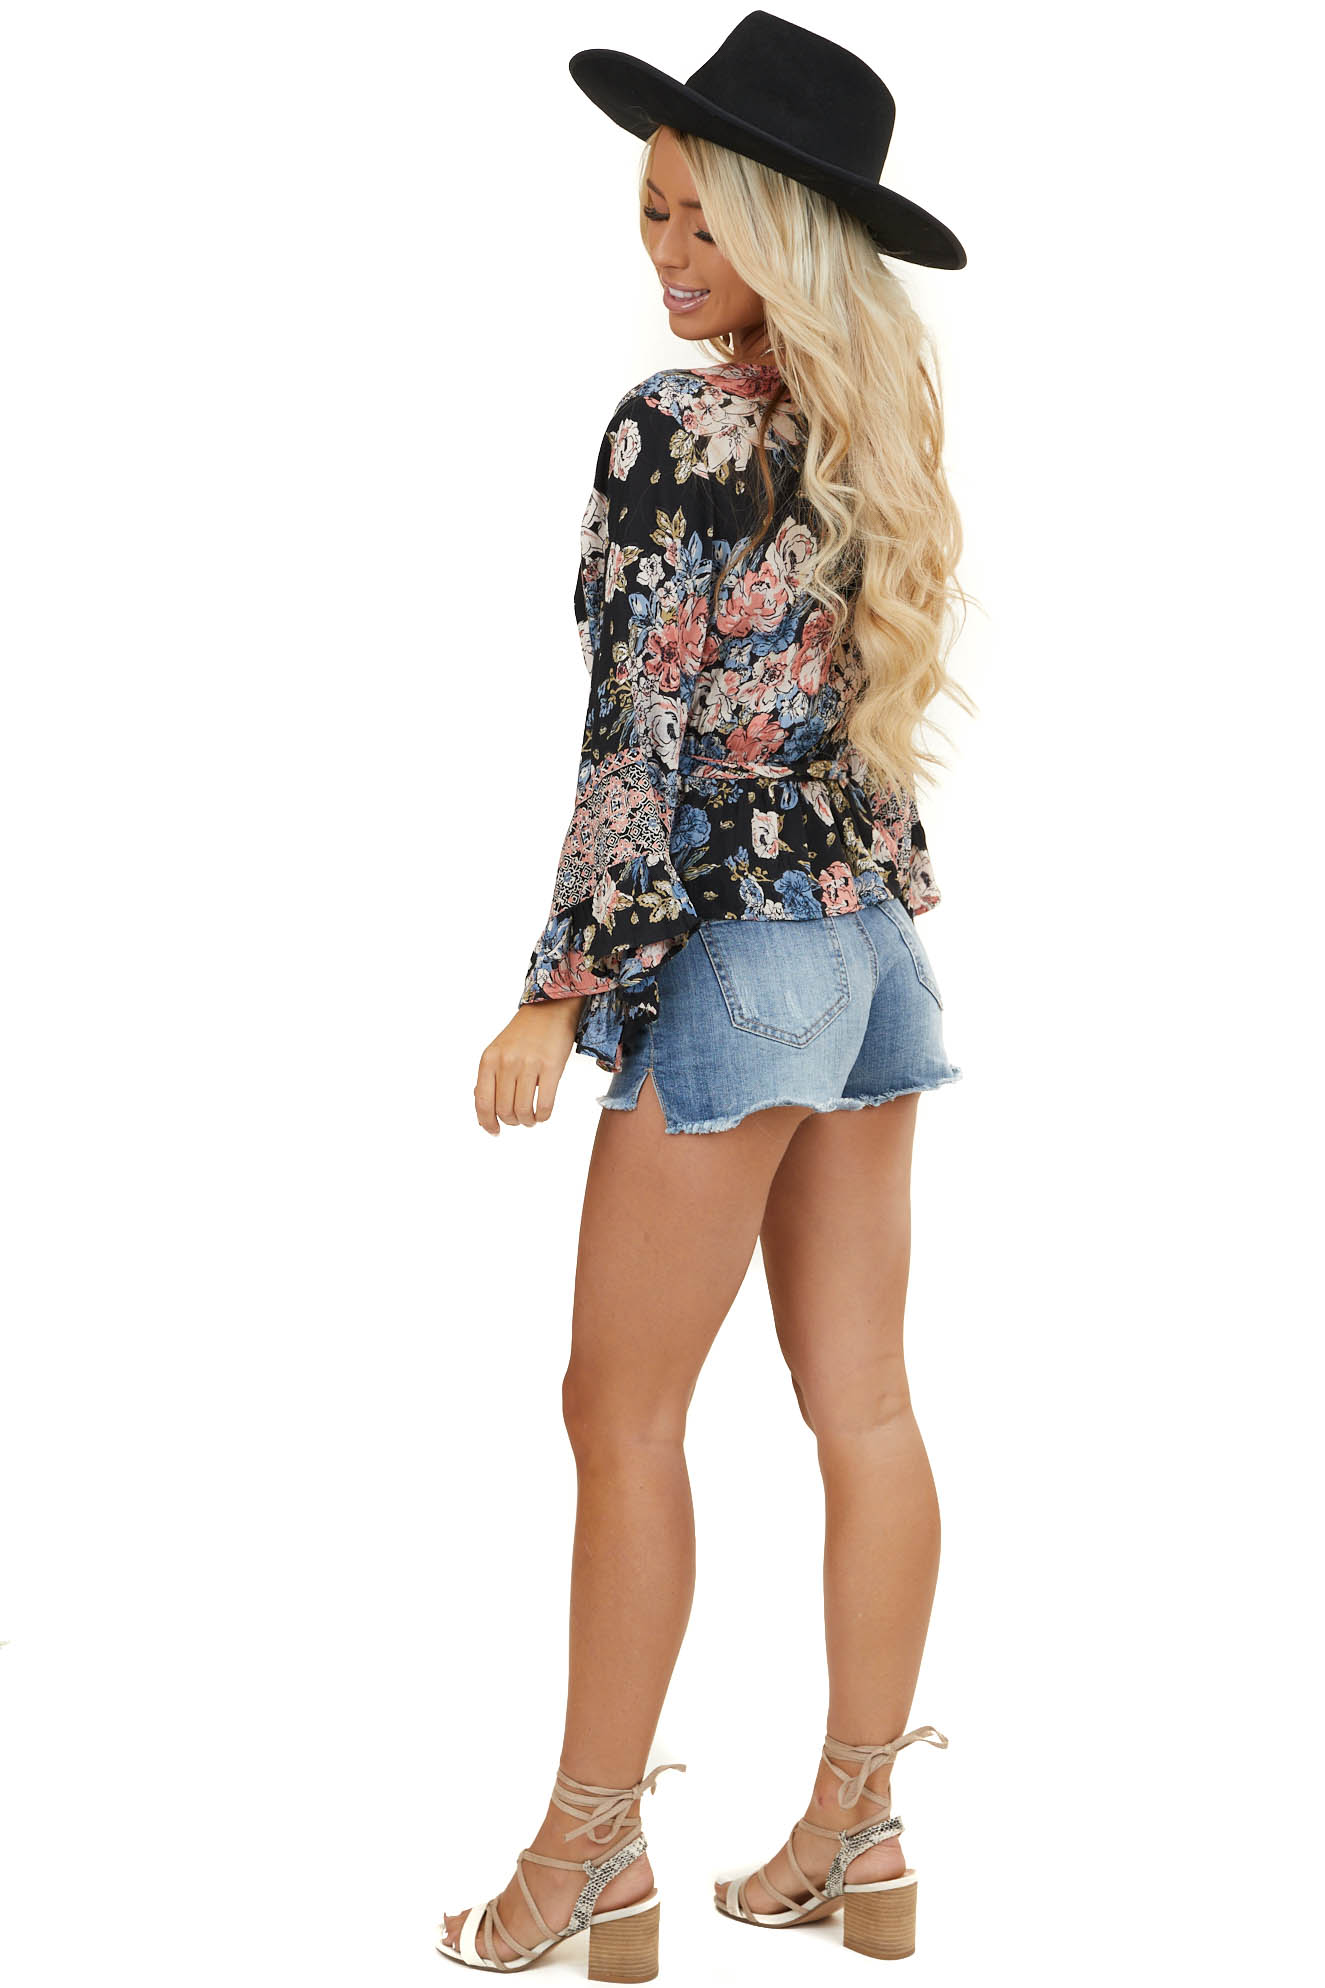 Black Floral Surplice Crop Top with 3/4 Flared Sleeves